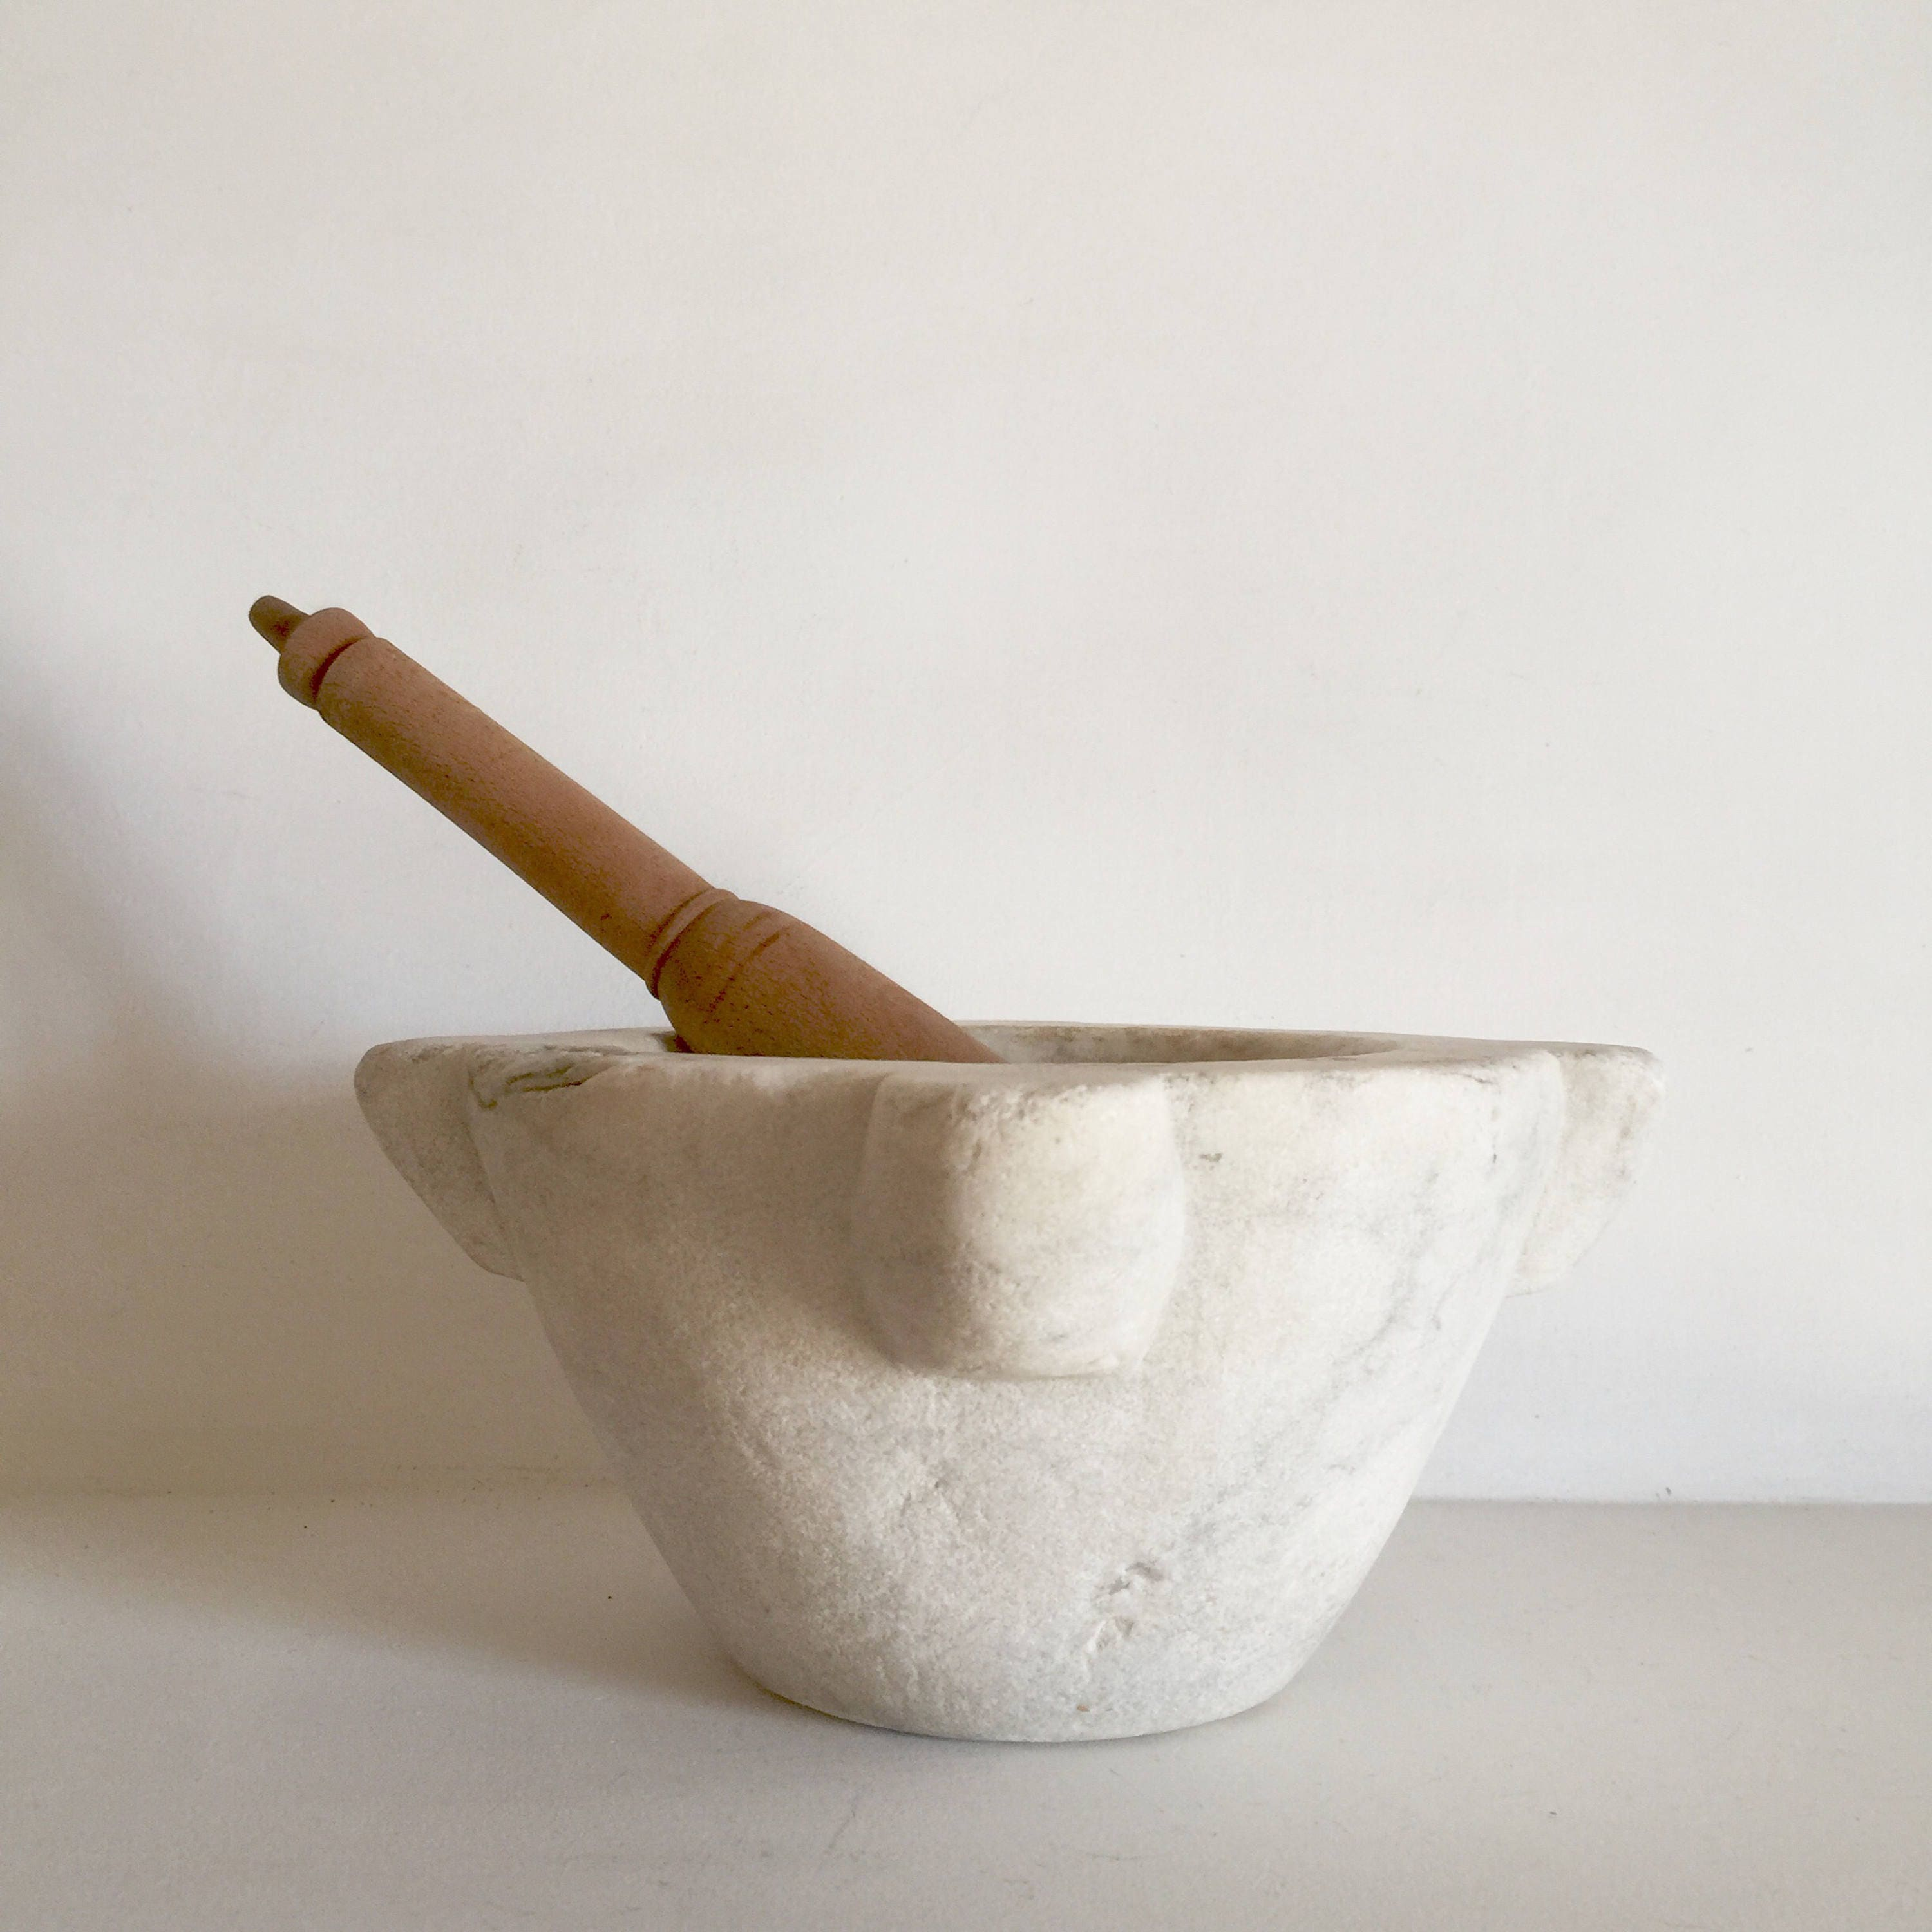 french antique mortar and pestle antique marble mortar. Black Bedroom Furniture Sets. Home Design Ideas